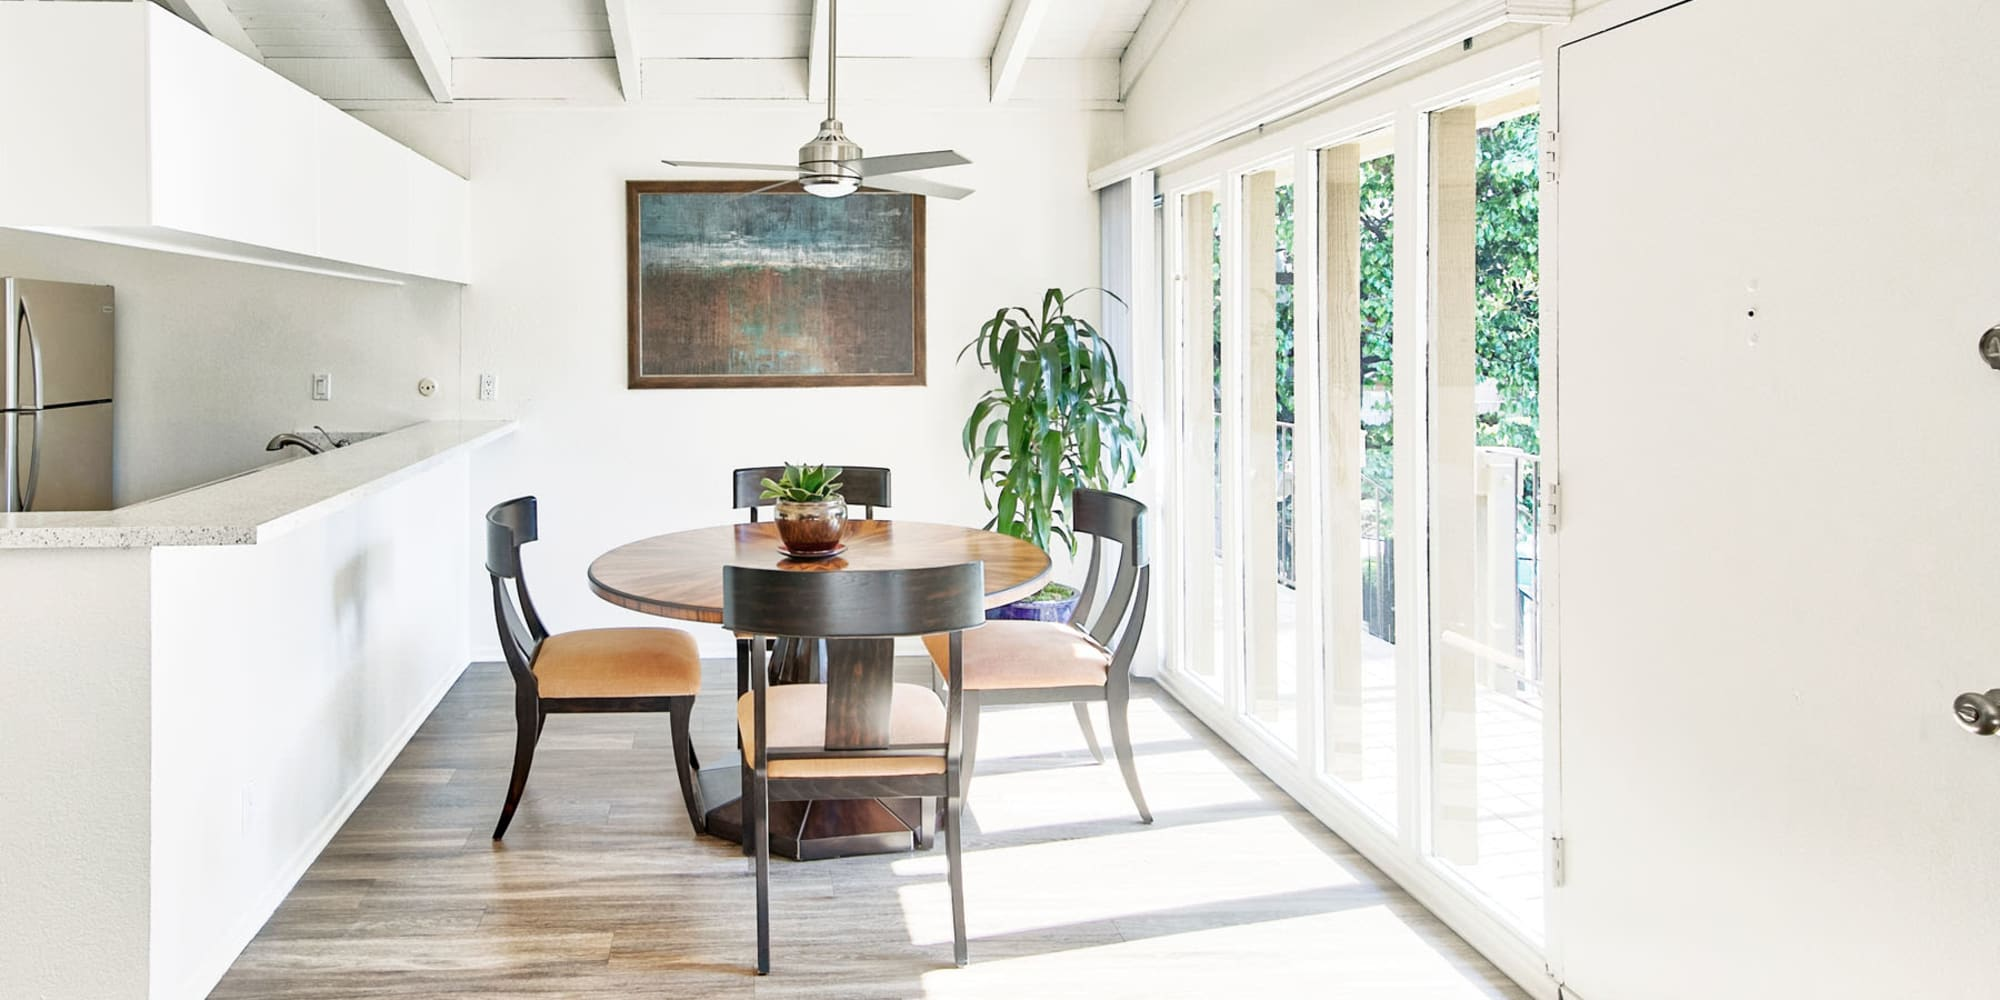 Floor-to-ceiling windows in the dining area next to the private balcony outside a model home at Mediterranean Village Apartments in Costa Mesa, California